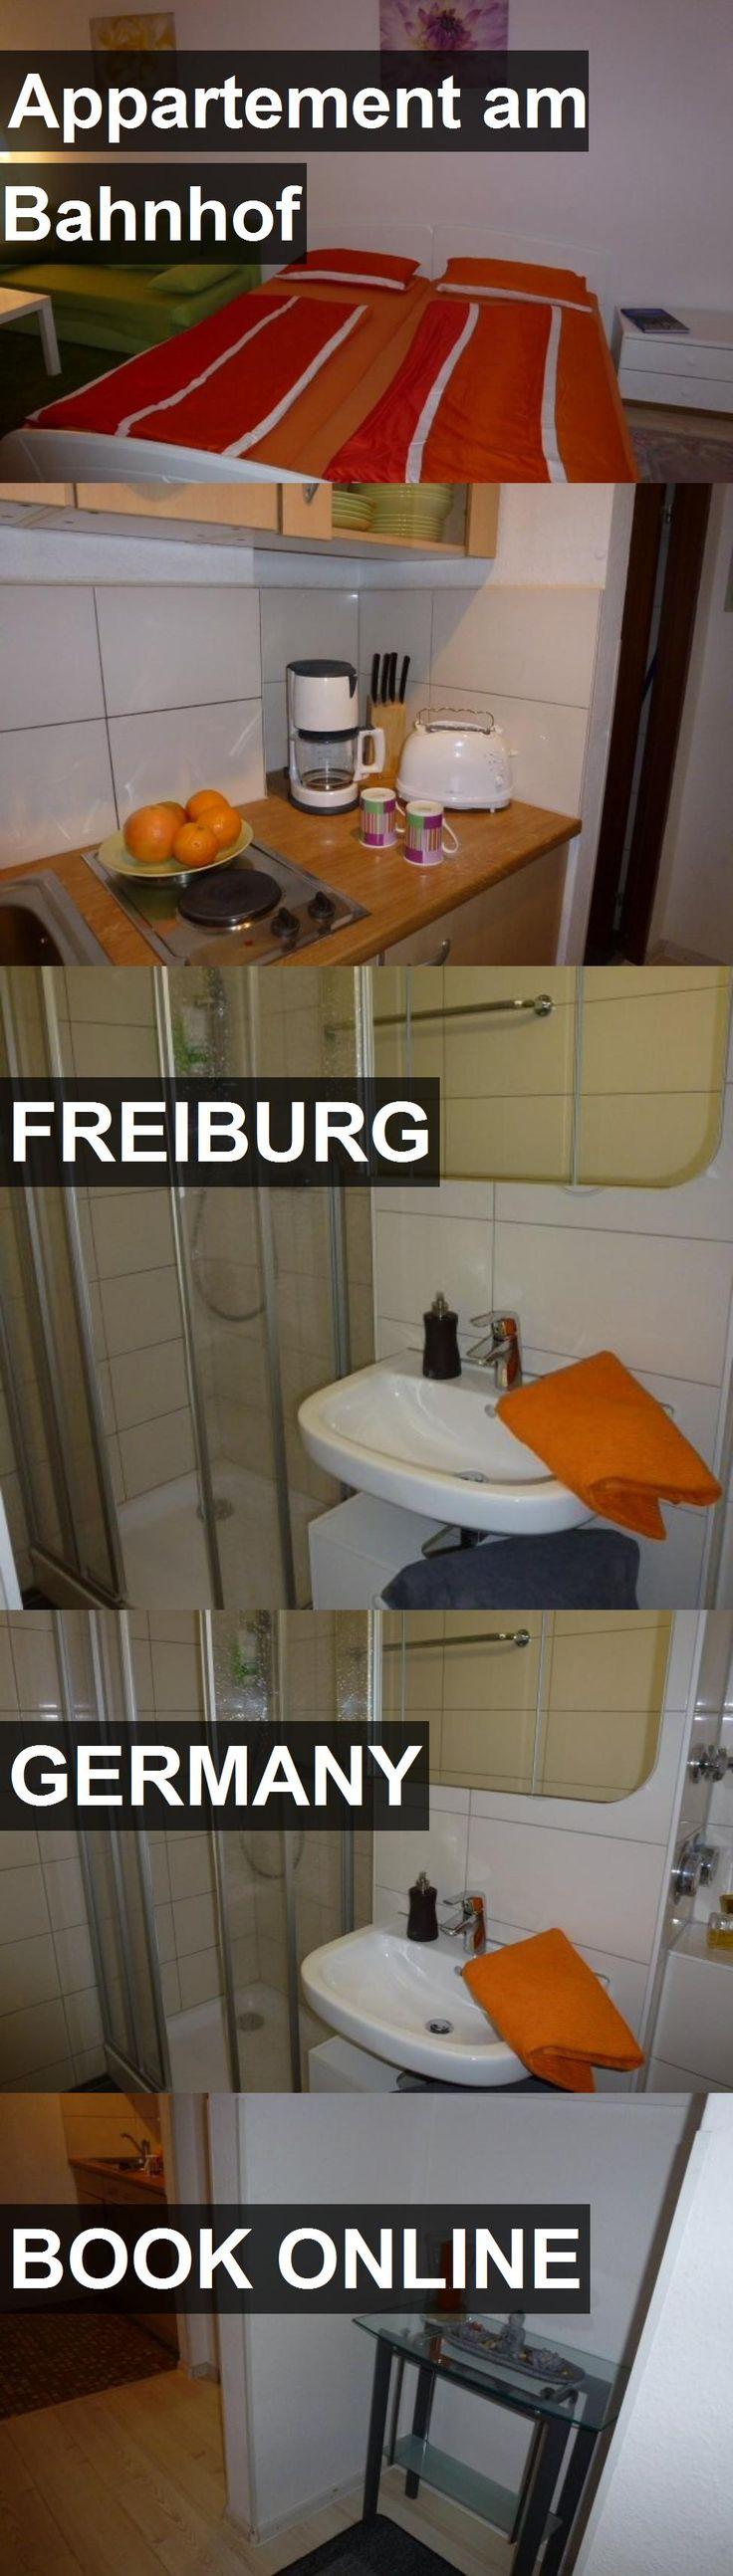 Hotel Appartement am Bahnhof in Freiburg, Germany. For more information, photos, reviews and best prices please follow the link. #Germany #Freiburg #travel #vacation #hotel